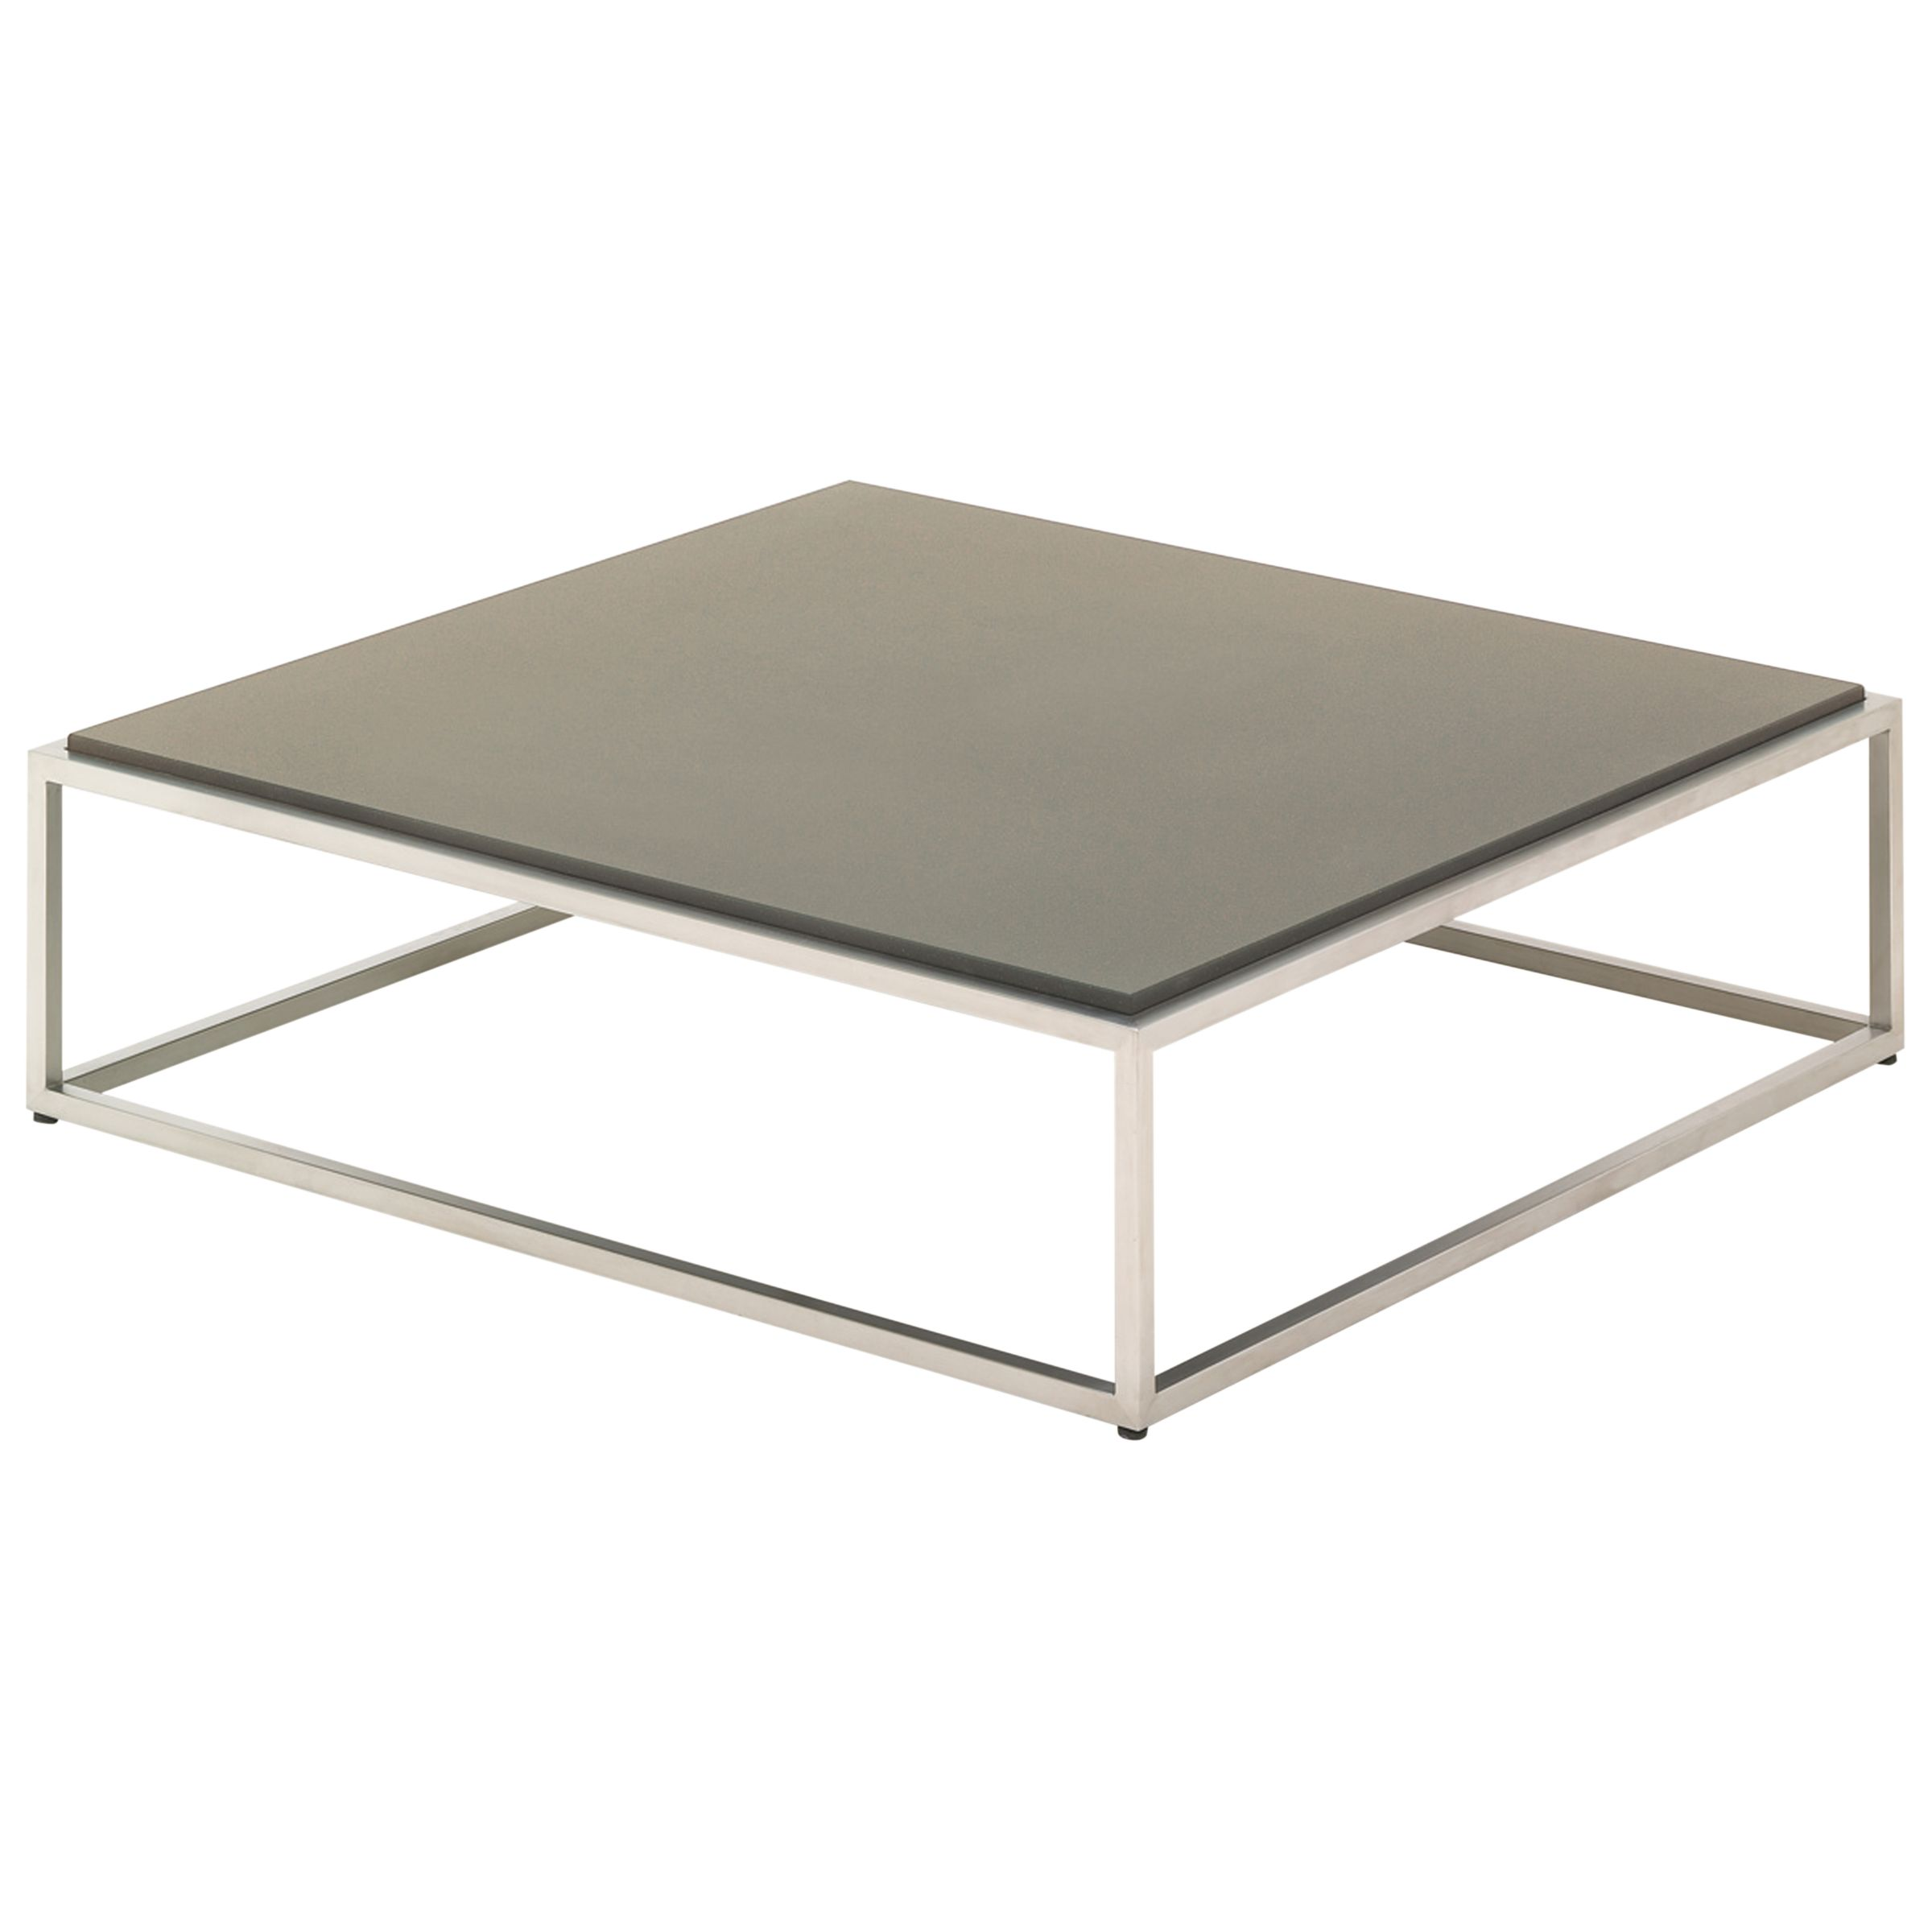 Gloster Cloud Square Outdoor Coffee Table with Quartz Top, Taupe